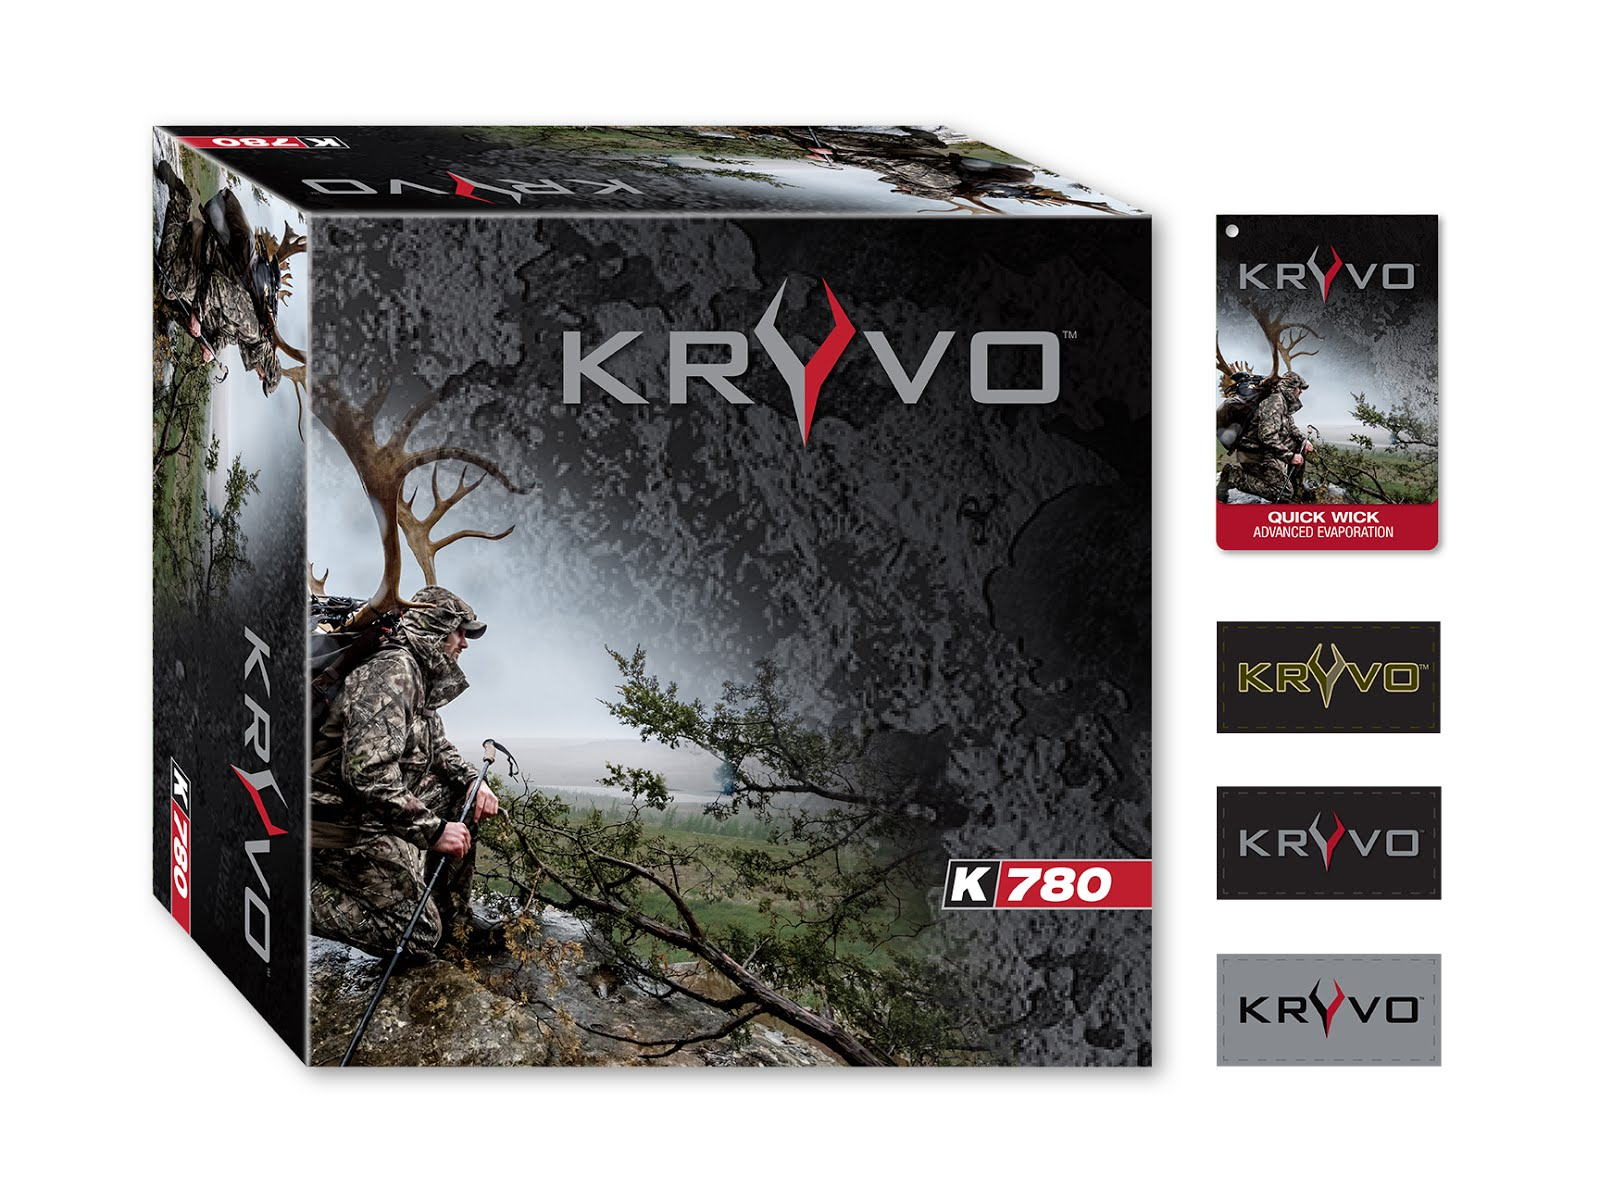 Kryvo Shoe Box and Hang Tag